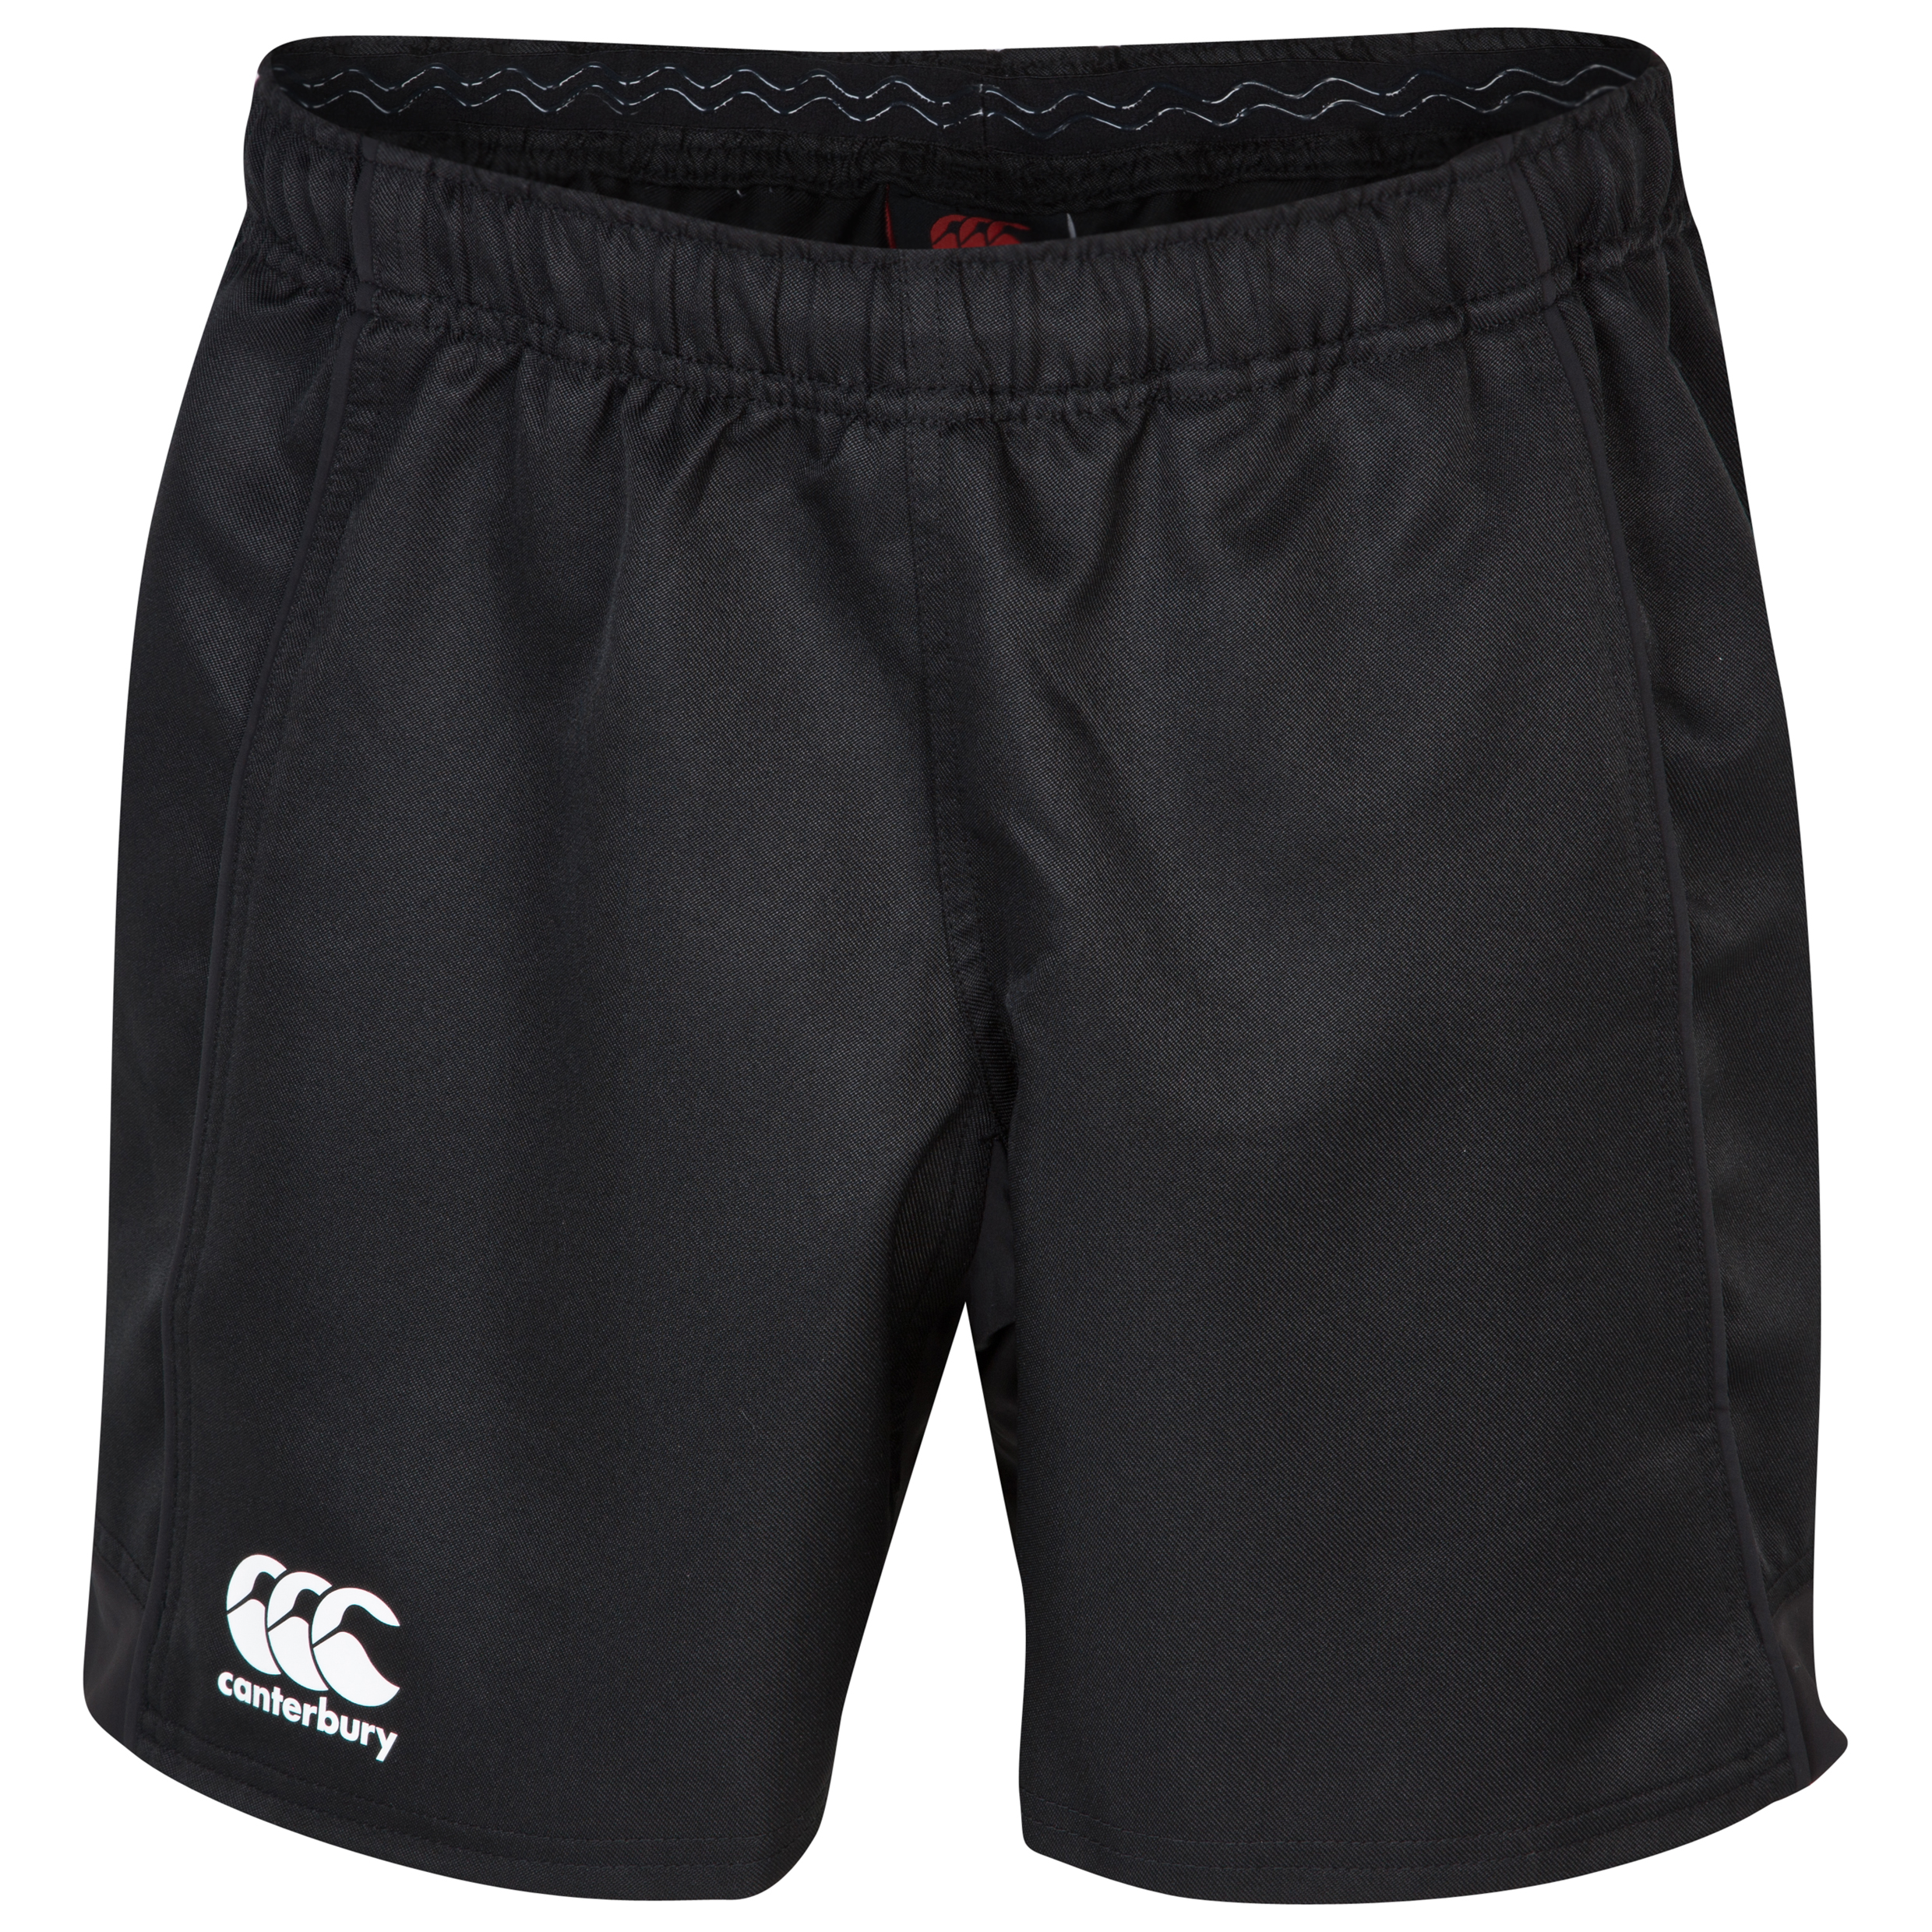 Canterbury Advantage Rugby Short - Black